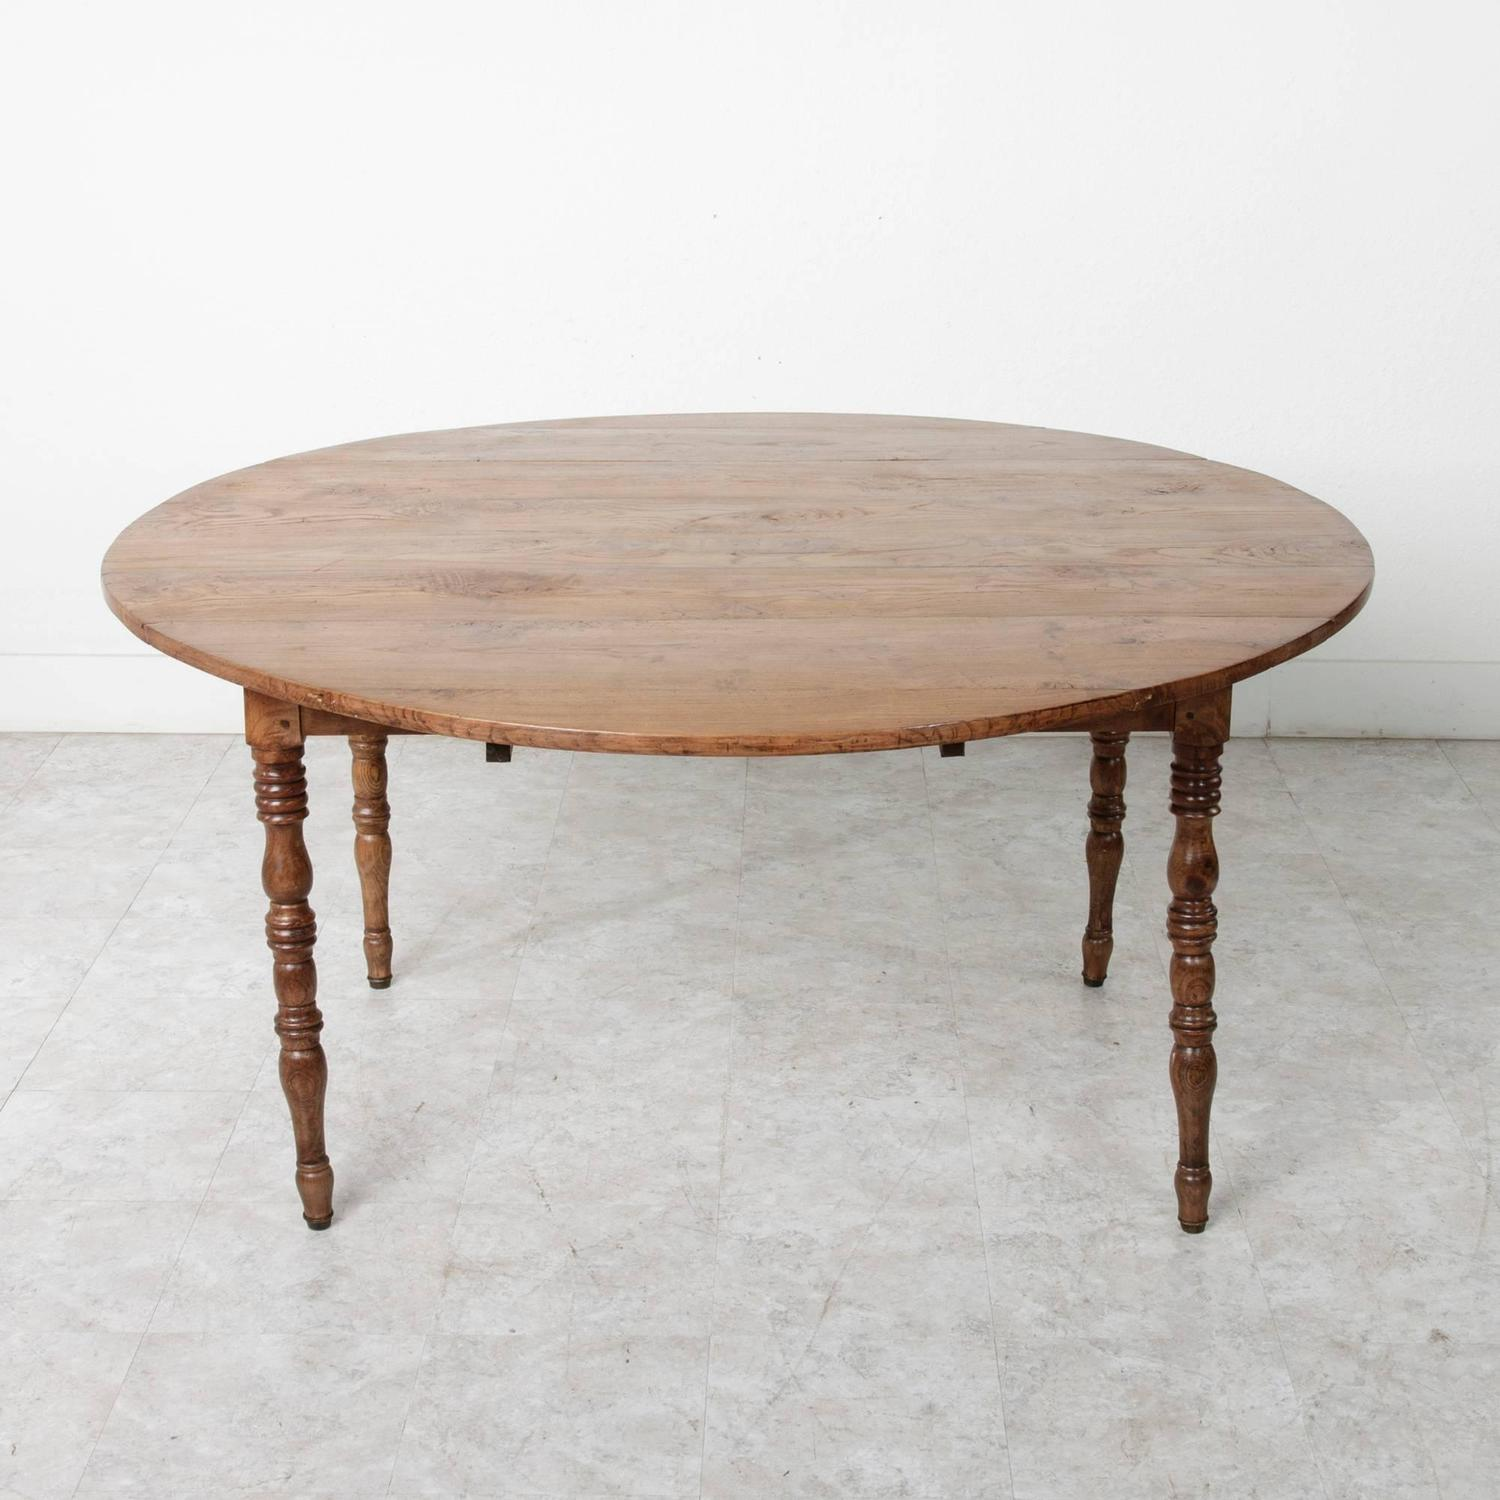 19th century french solid elm round dining table with drop leaves for